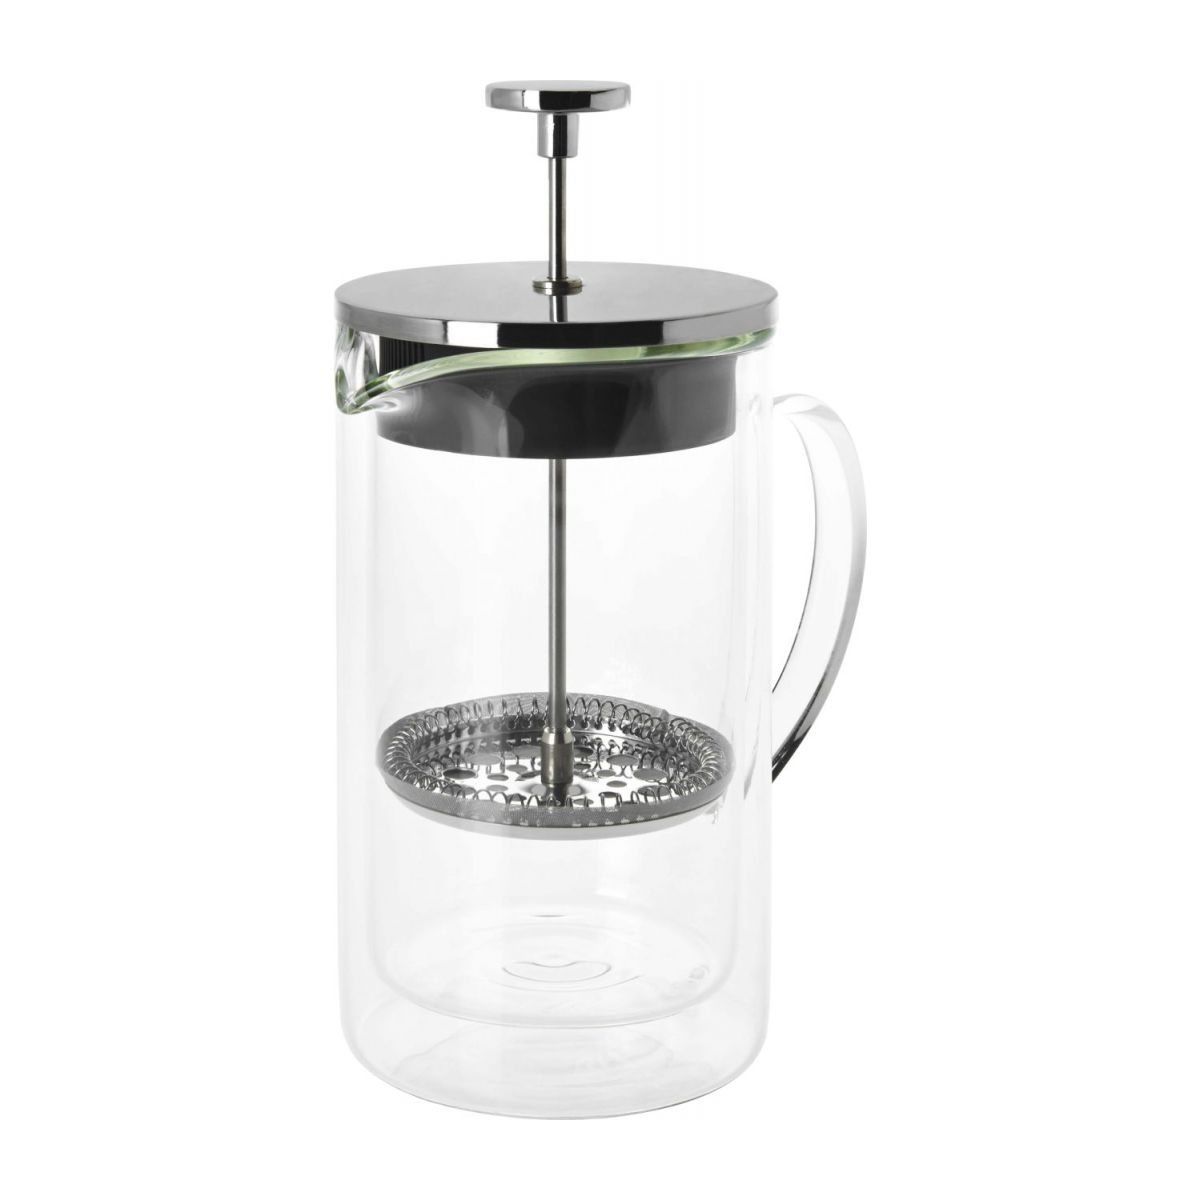 800ml French press coffee maker n°2